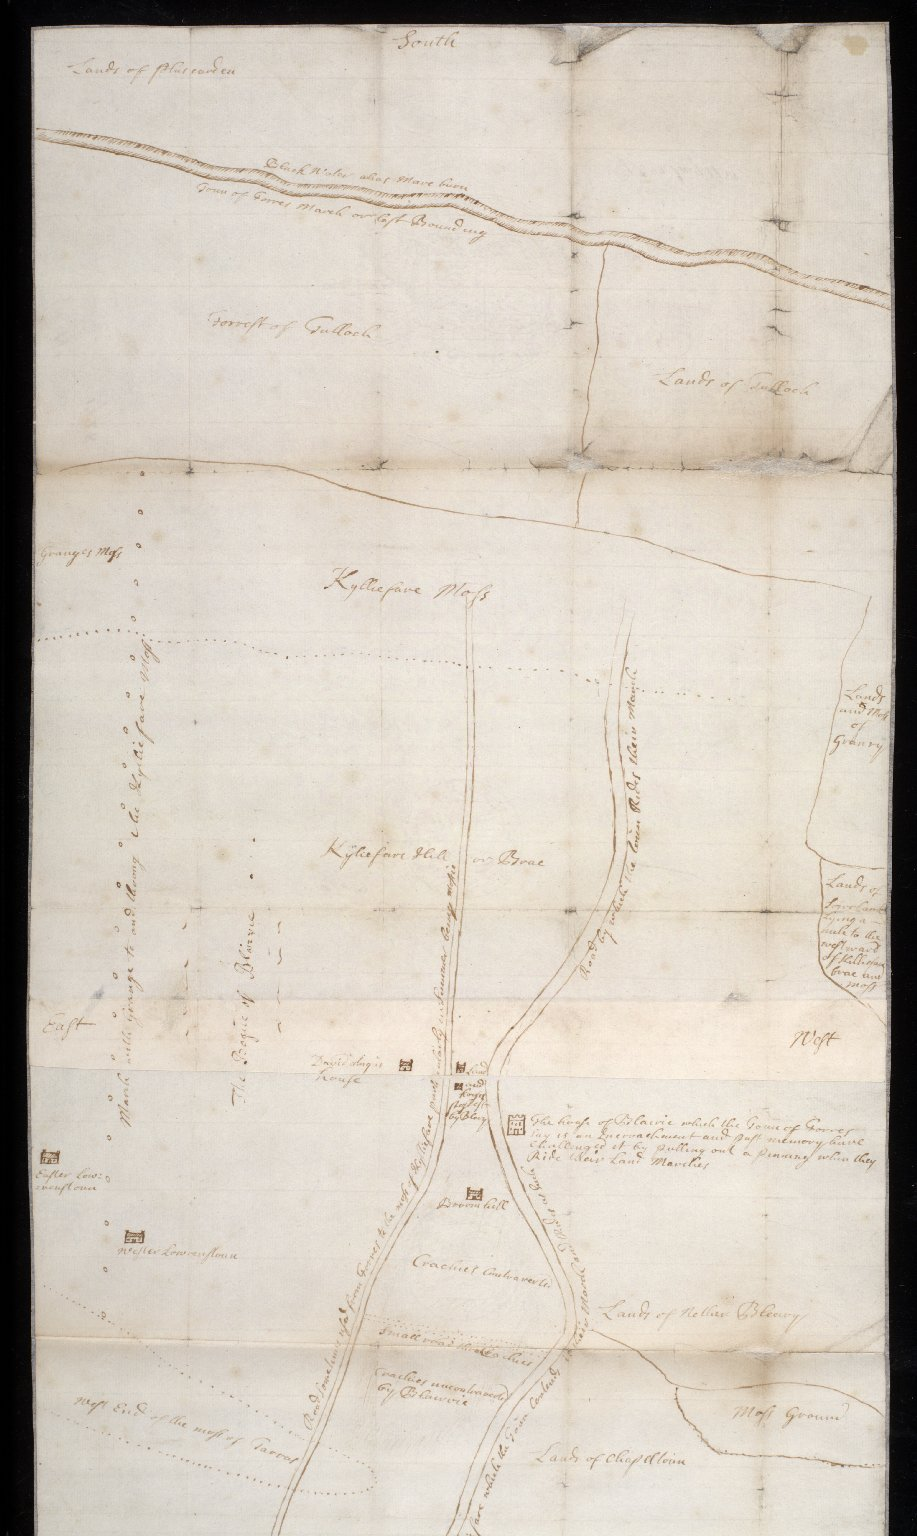 [Plan of march ground between Forres and Califer, under dispute between the town of Forres and Mackintosh of Blairvie (Blervie)] [1 of 2]